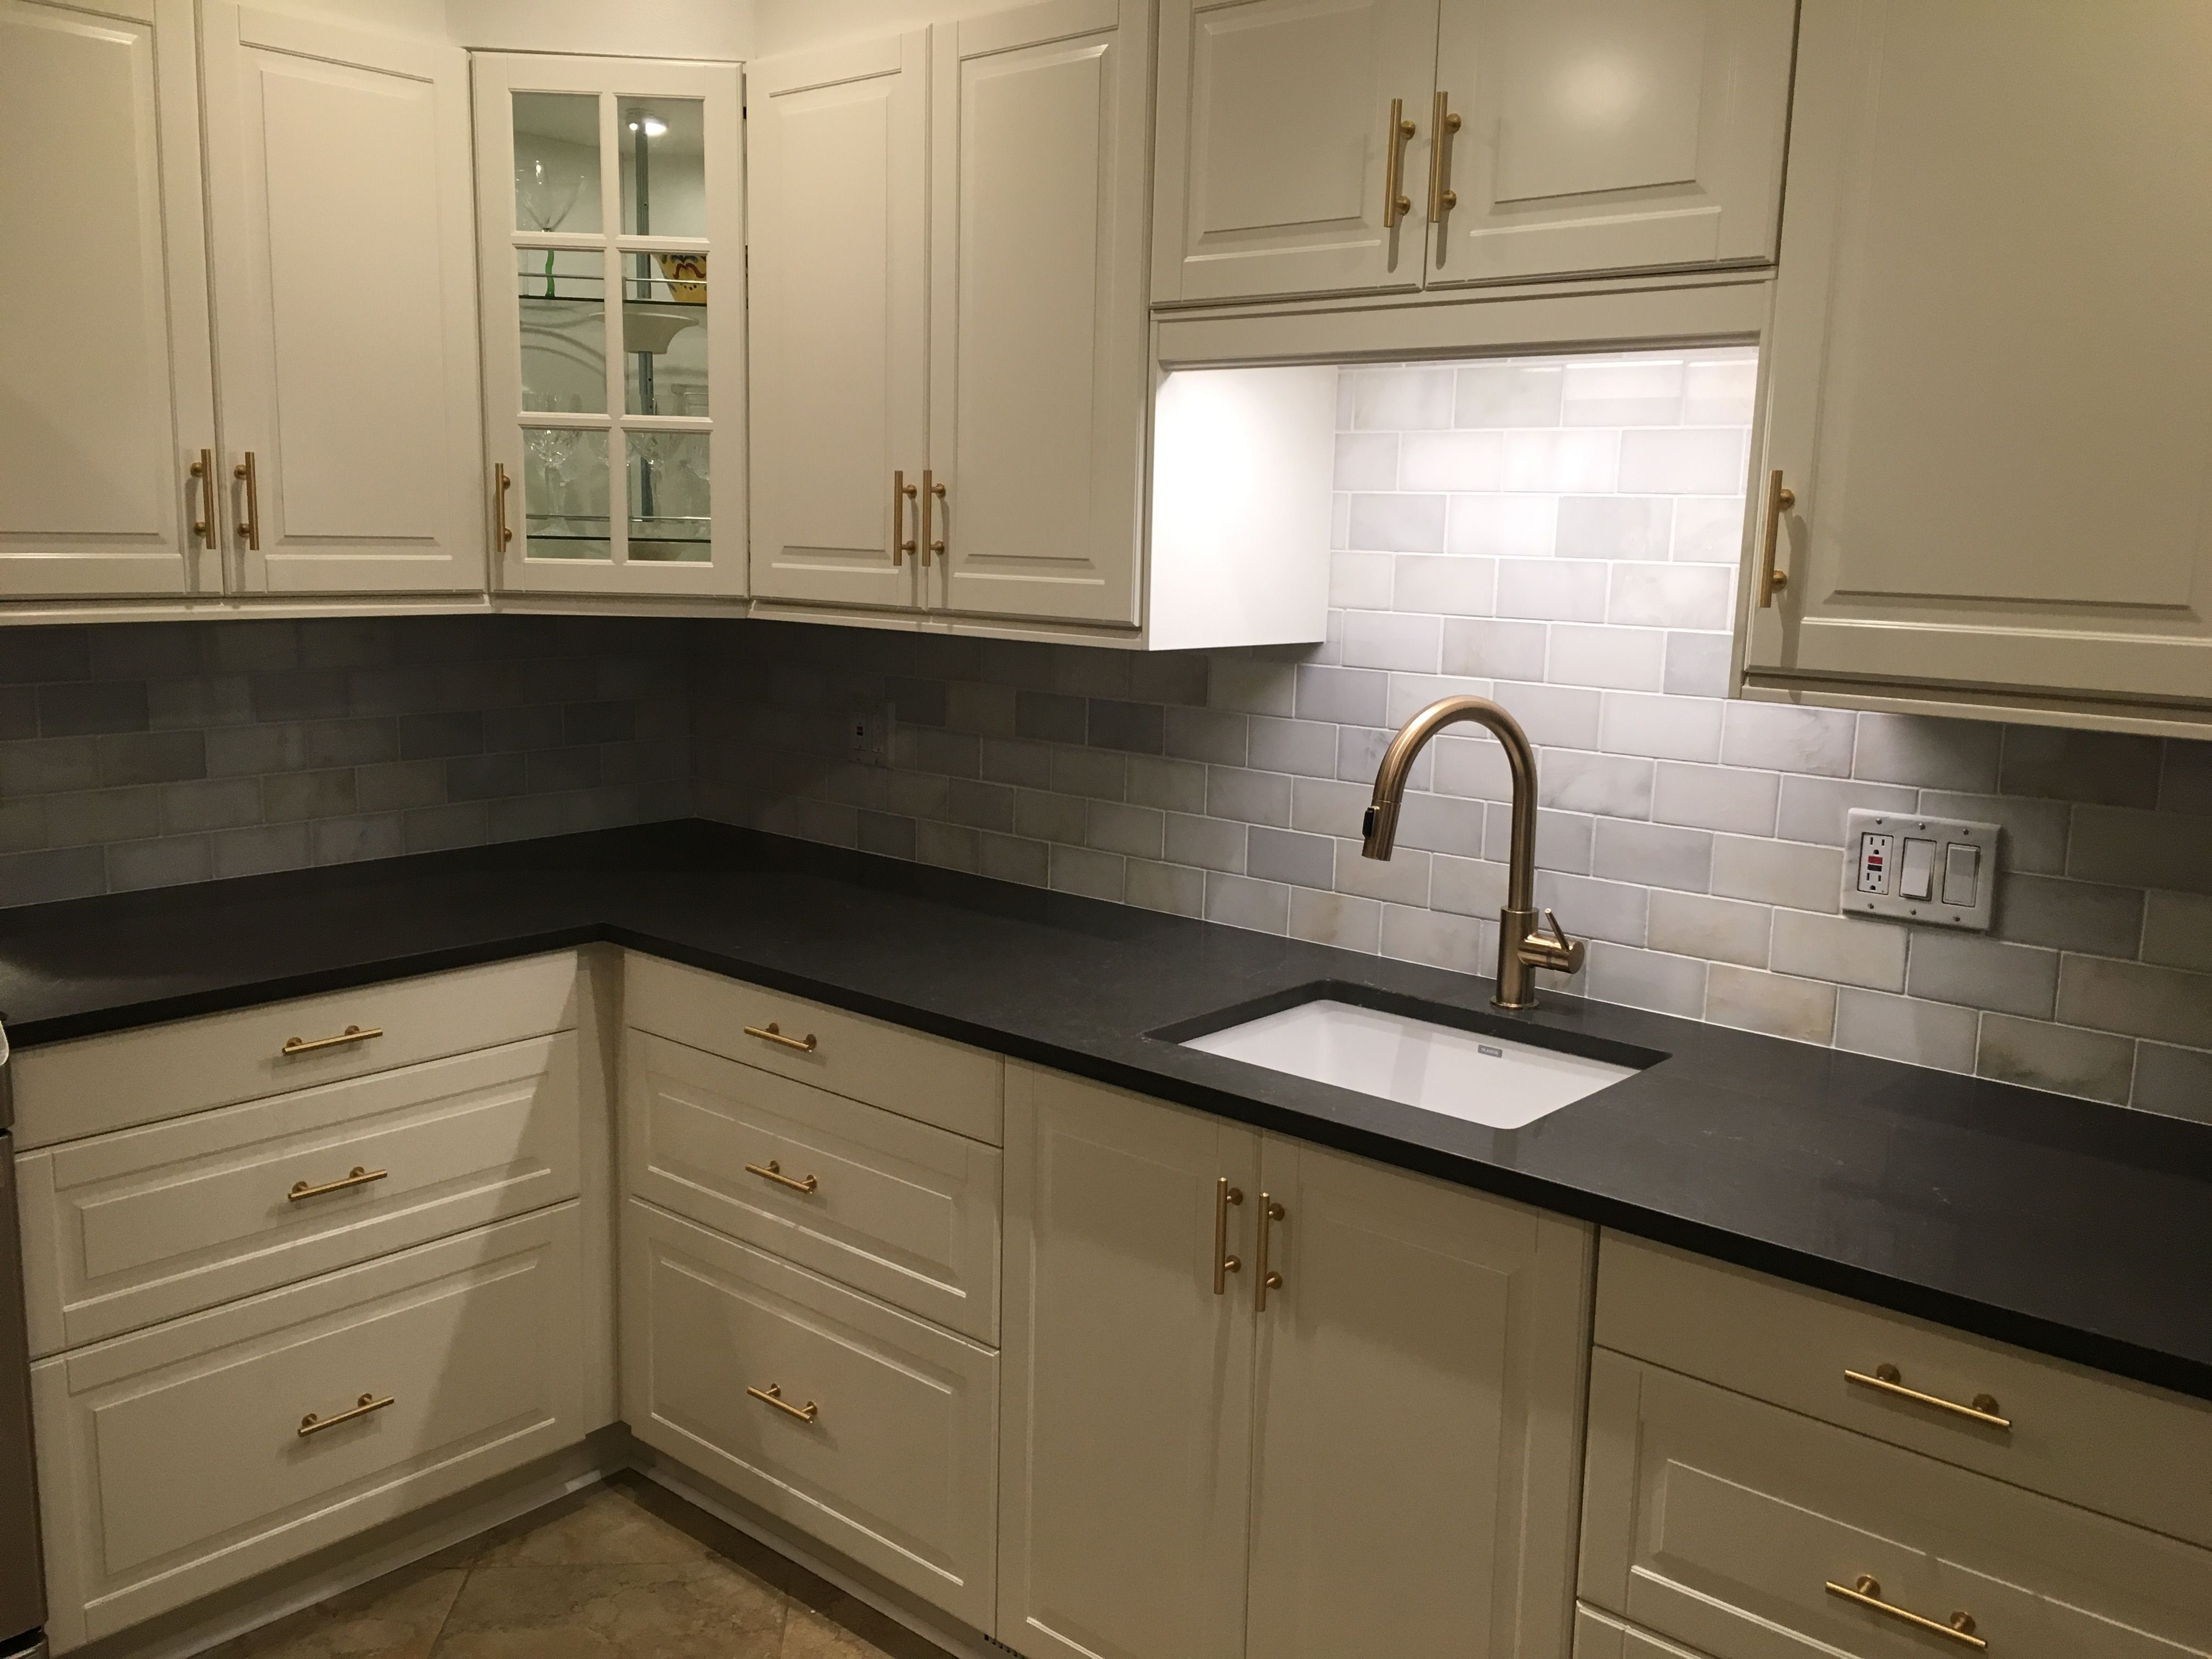 Ikea white Bodbyn with Piatra gray counter. Marble subway tile from ...